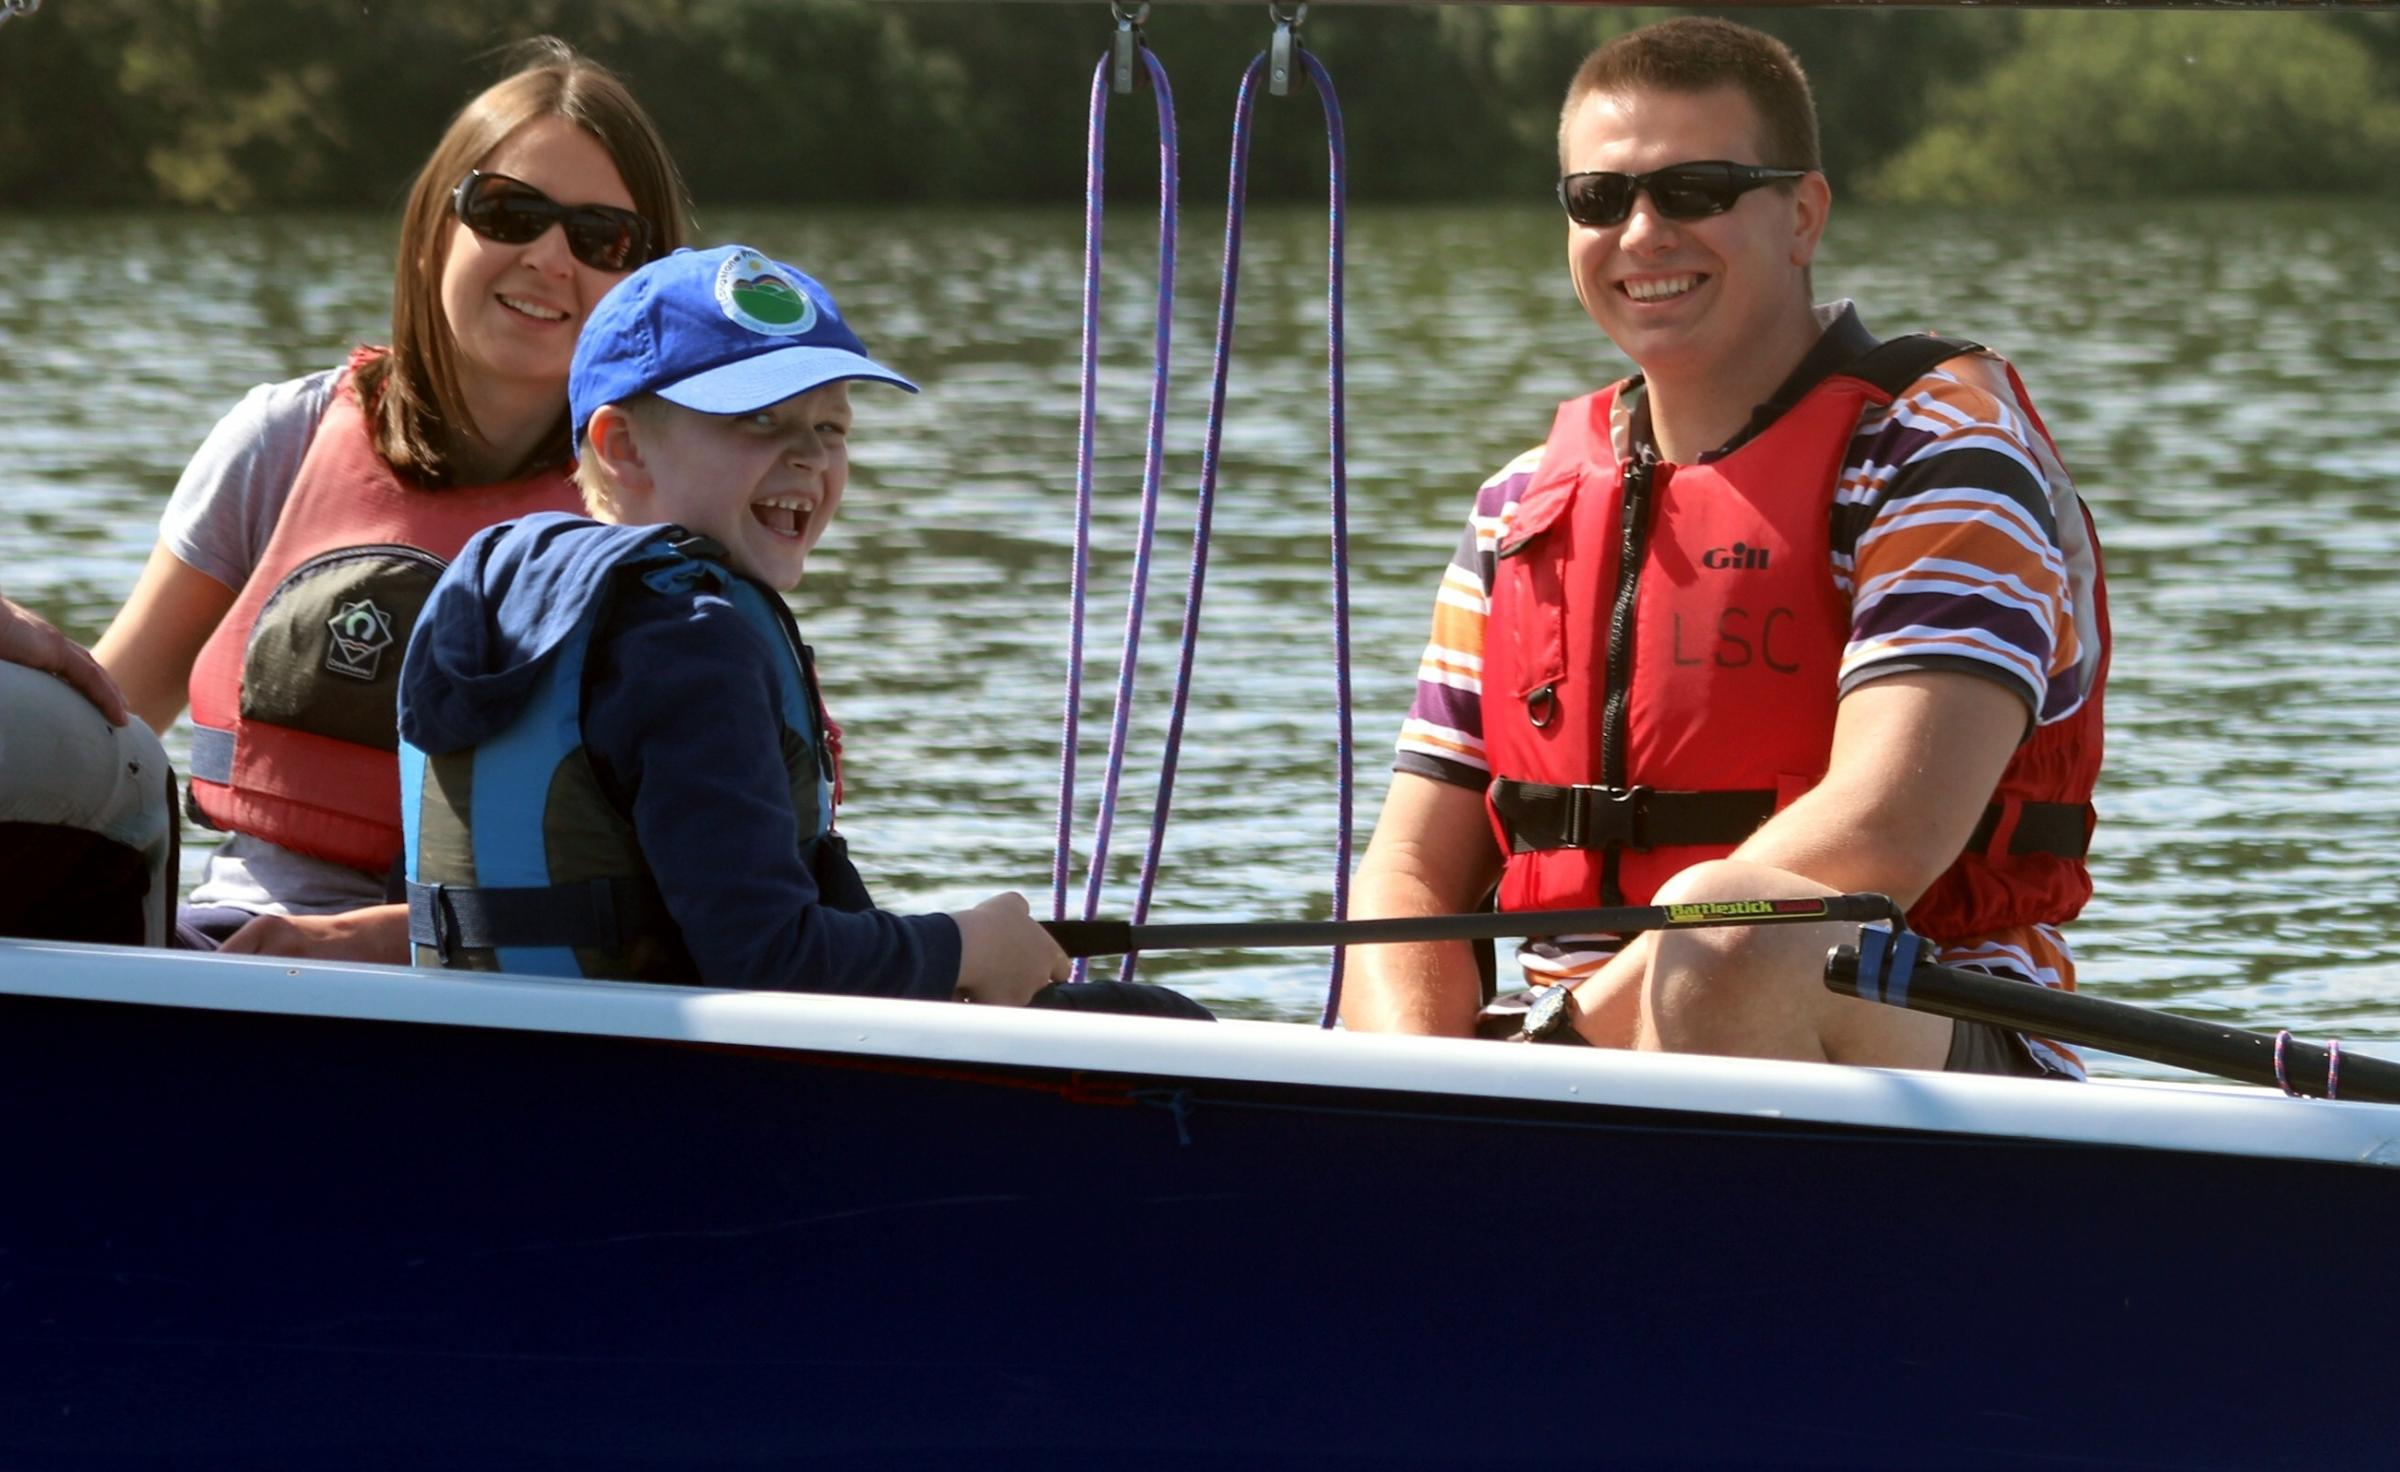 Push the Boat Out with free sailing sessions next month